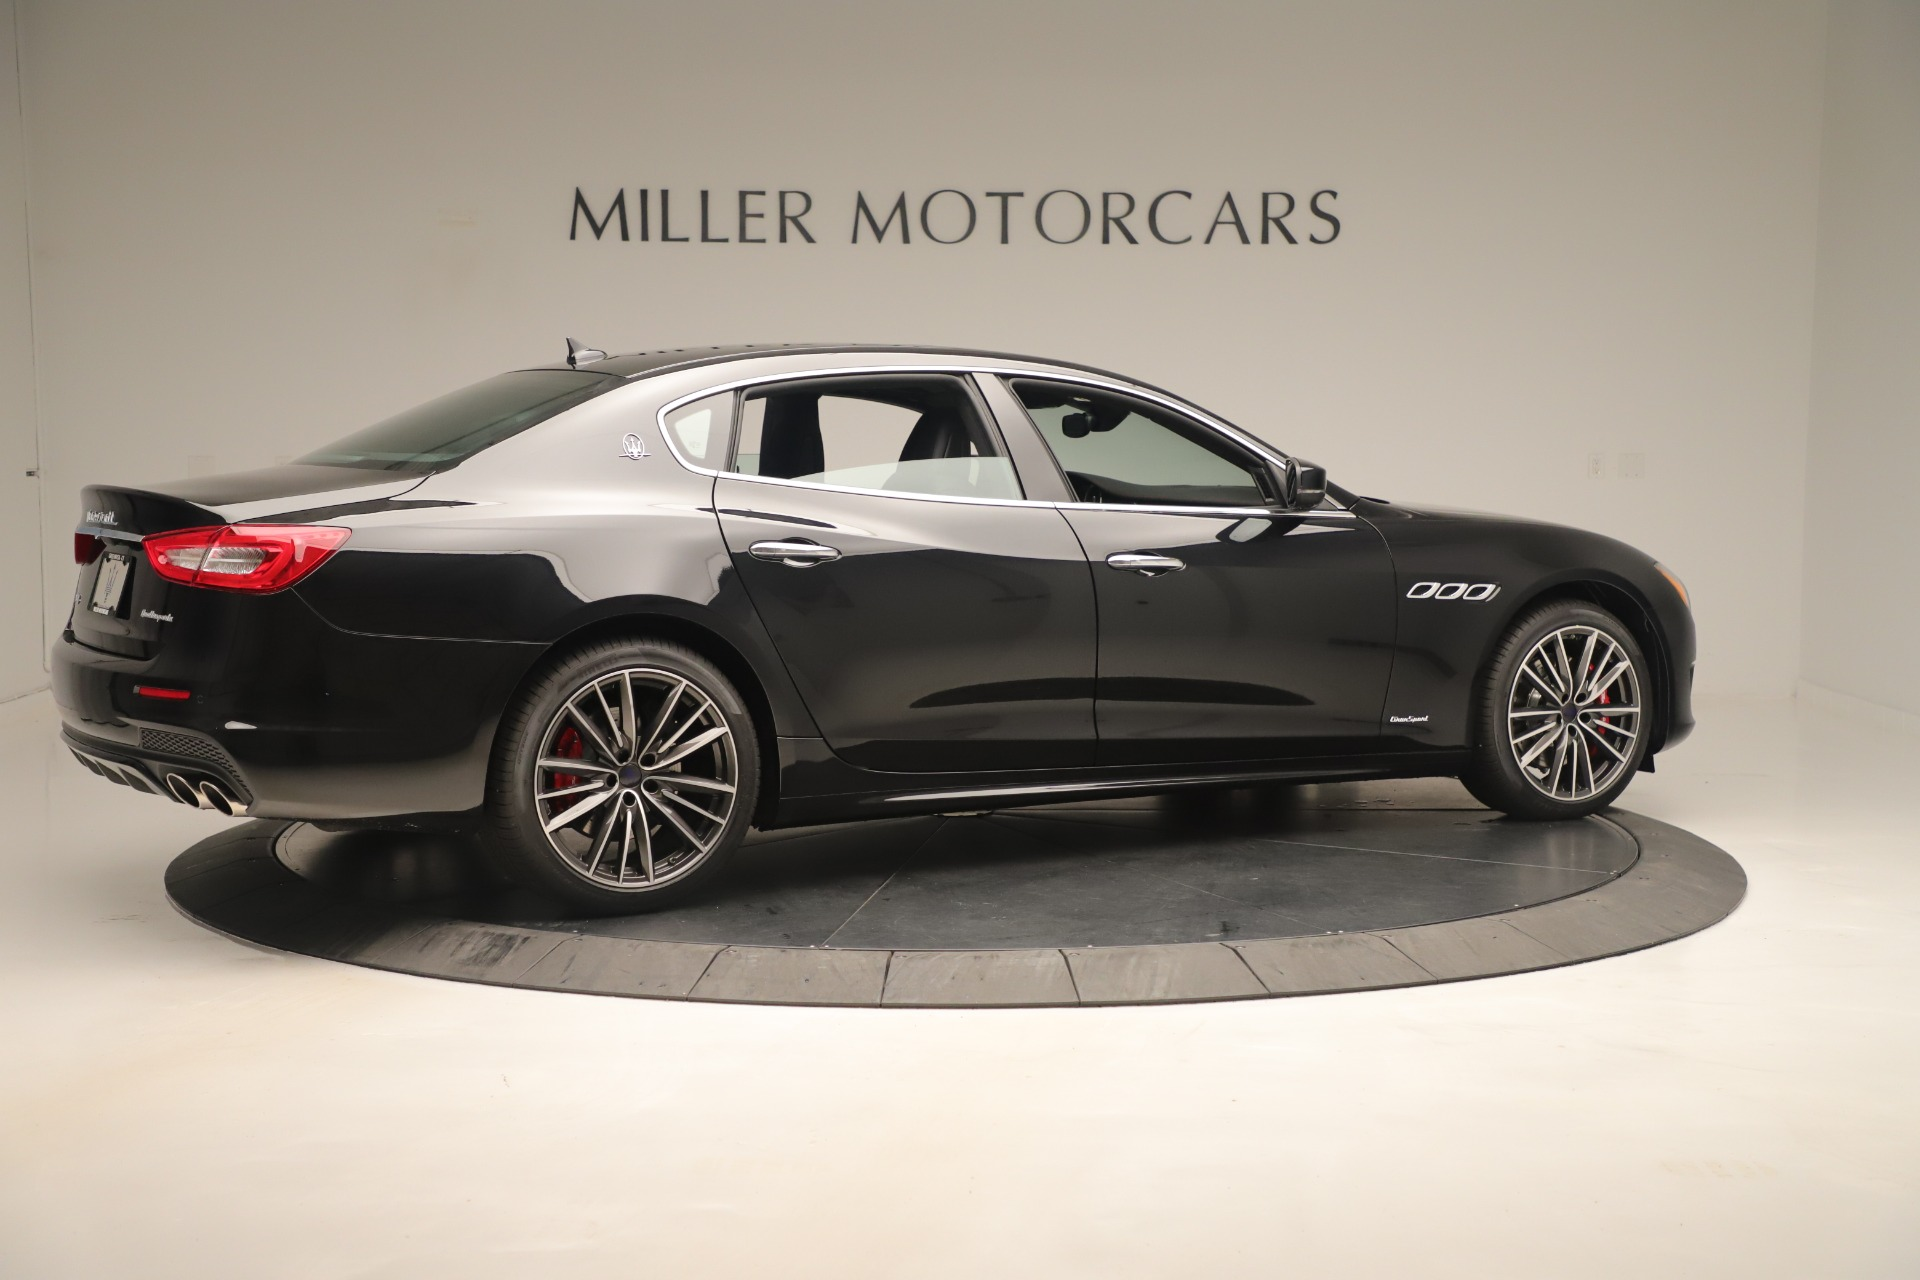 New 2019 Maserati Quattroporte S Q4 GranSport For Sale 130855 In Greenwich, CT